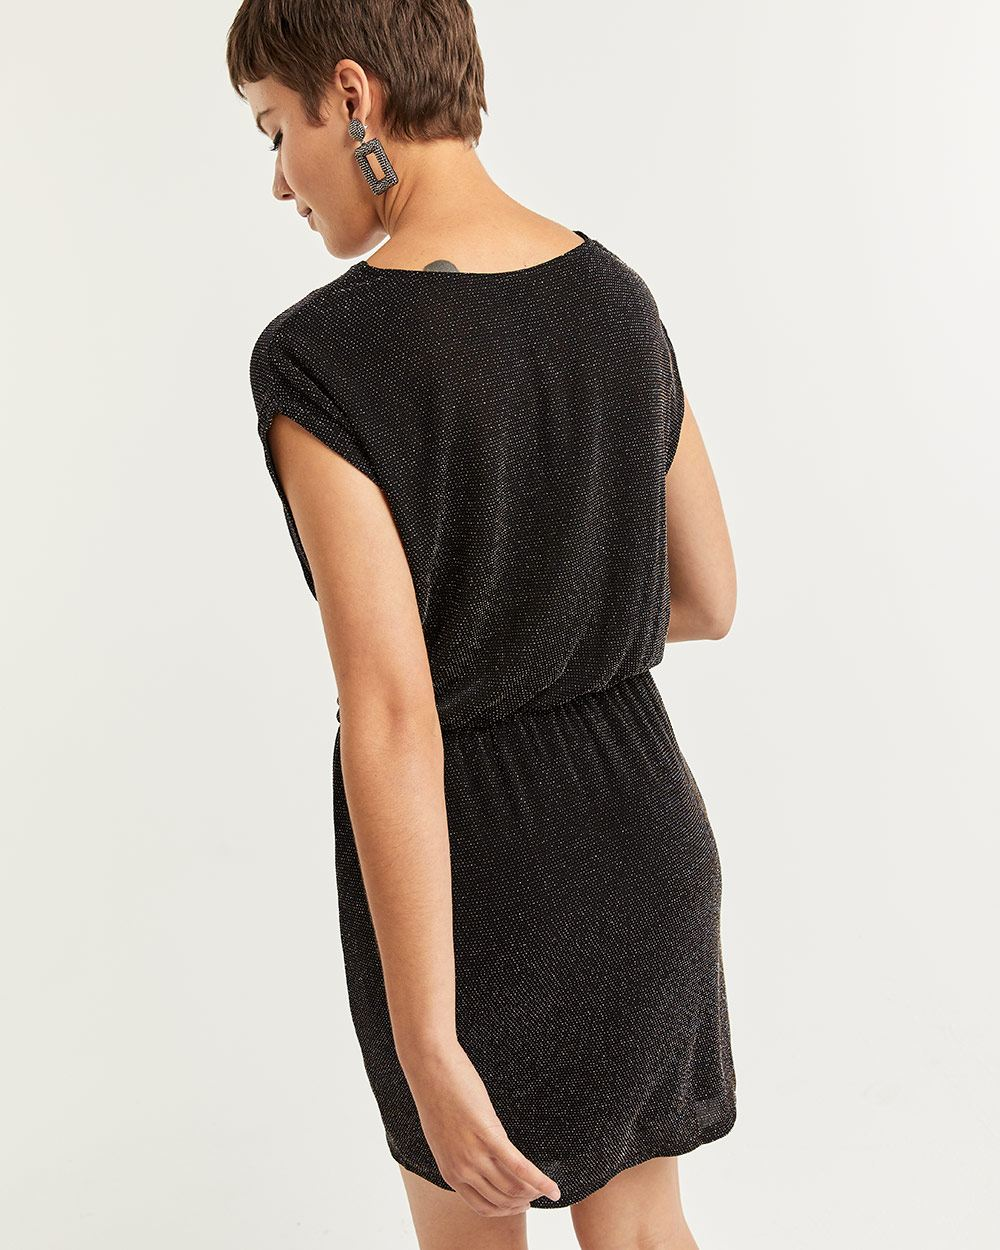 Short Sleeve Shimmer Dress with Draped Neck